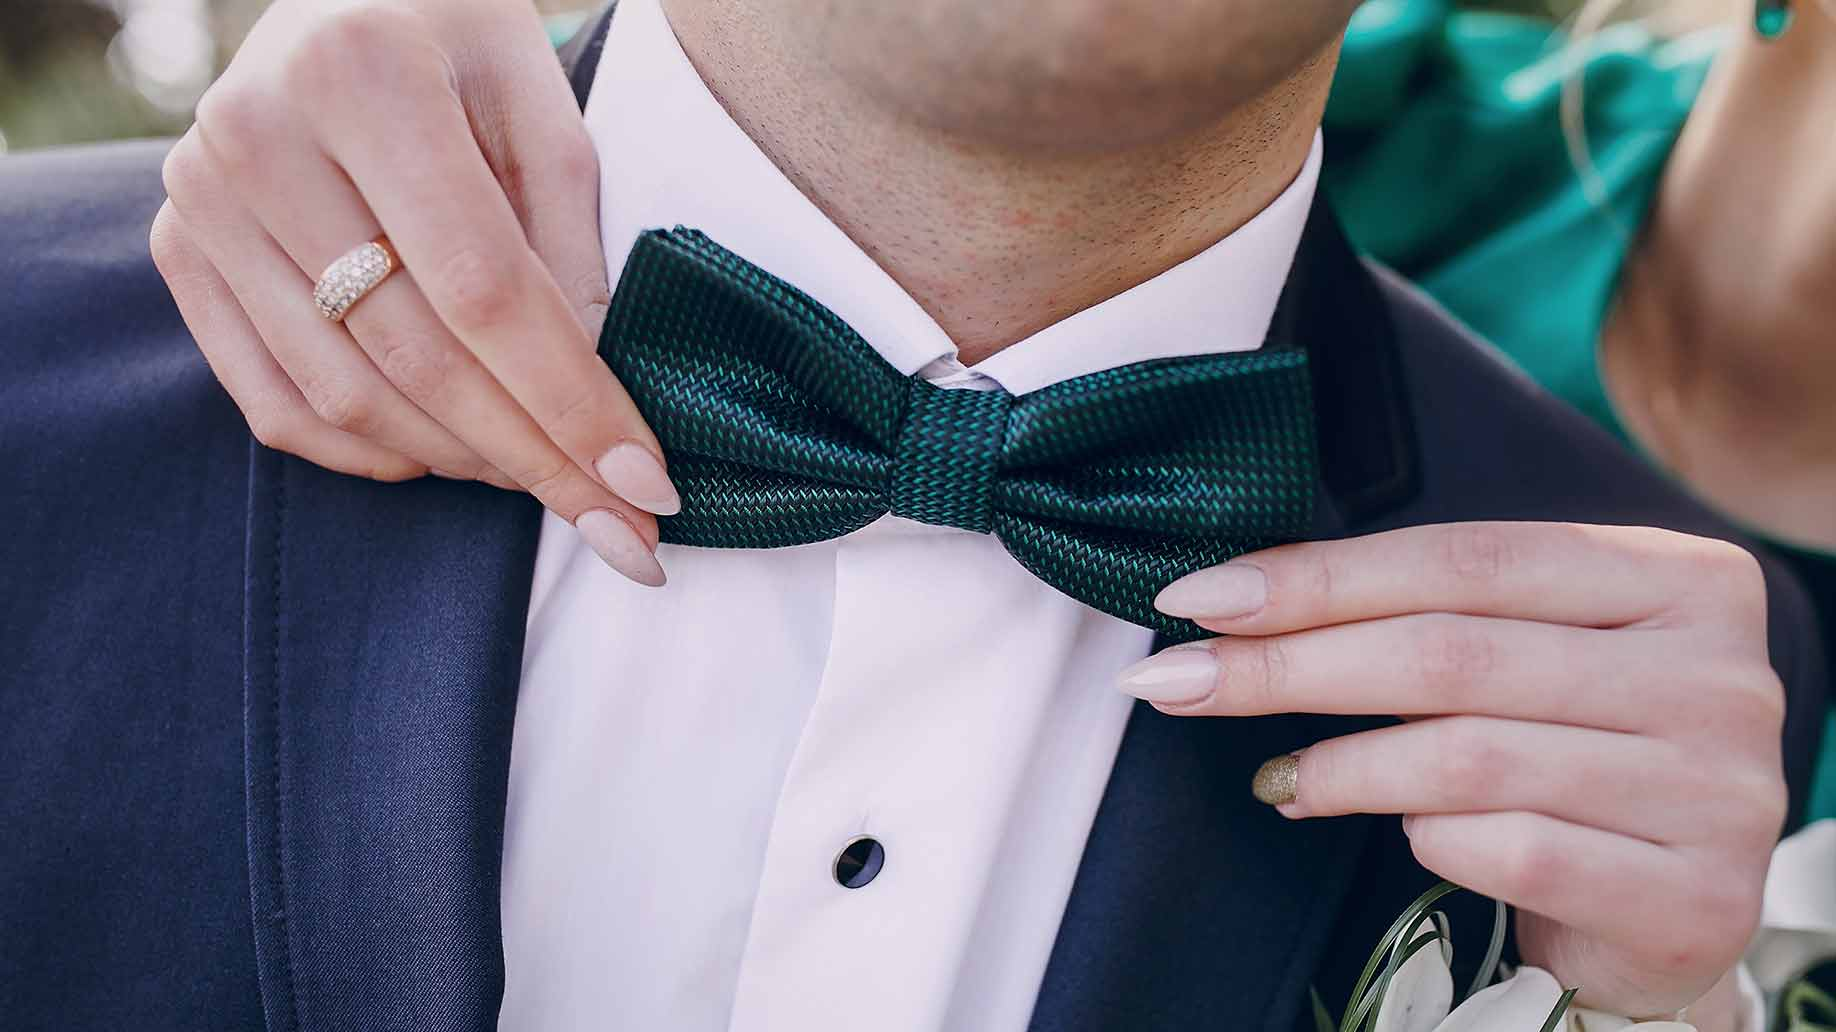 How Much Does a Wedding Tuxedo Cost to Rent vs. Buy - Prices